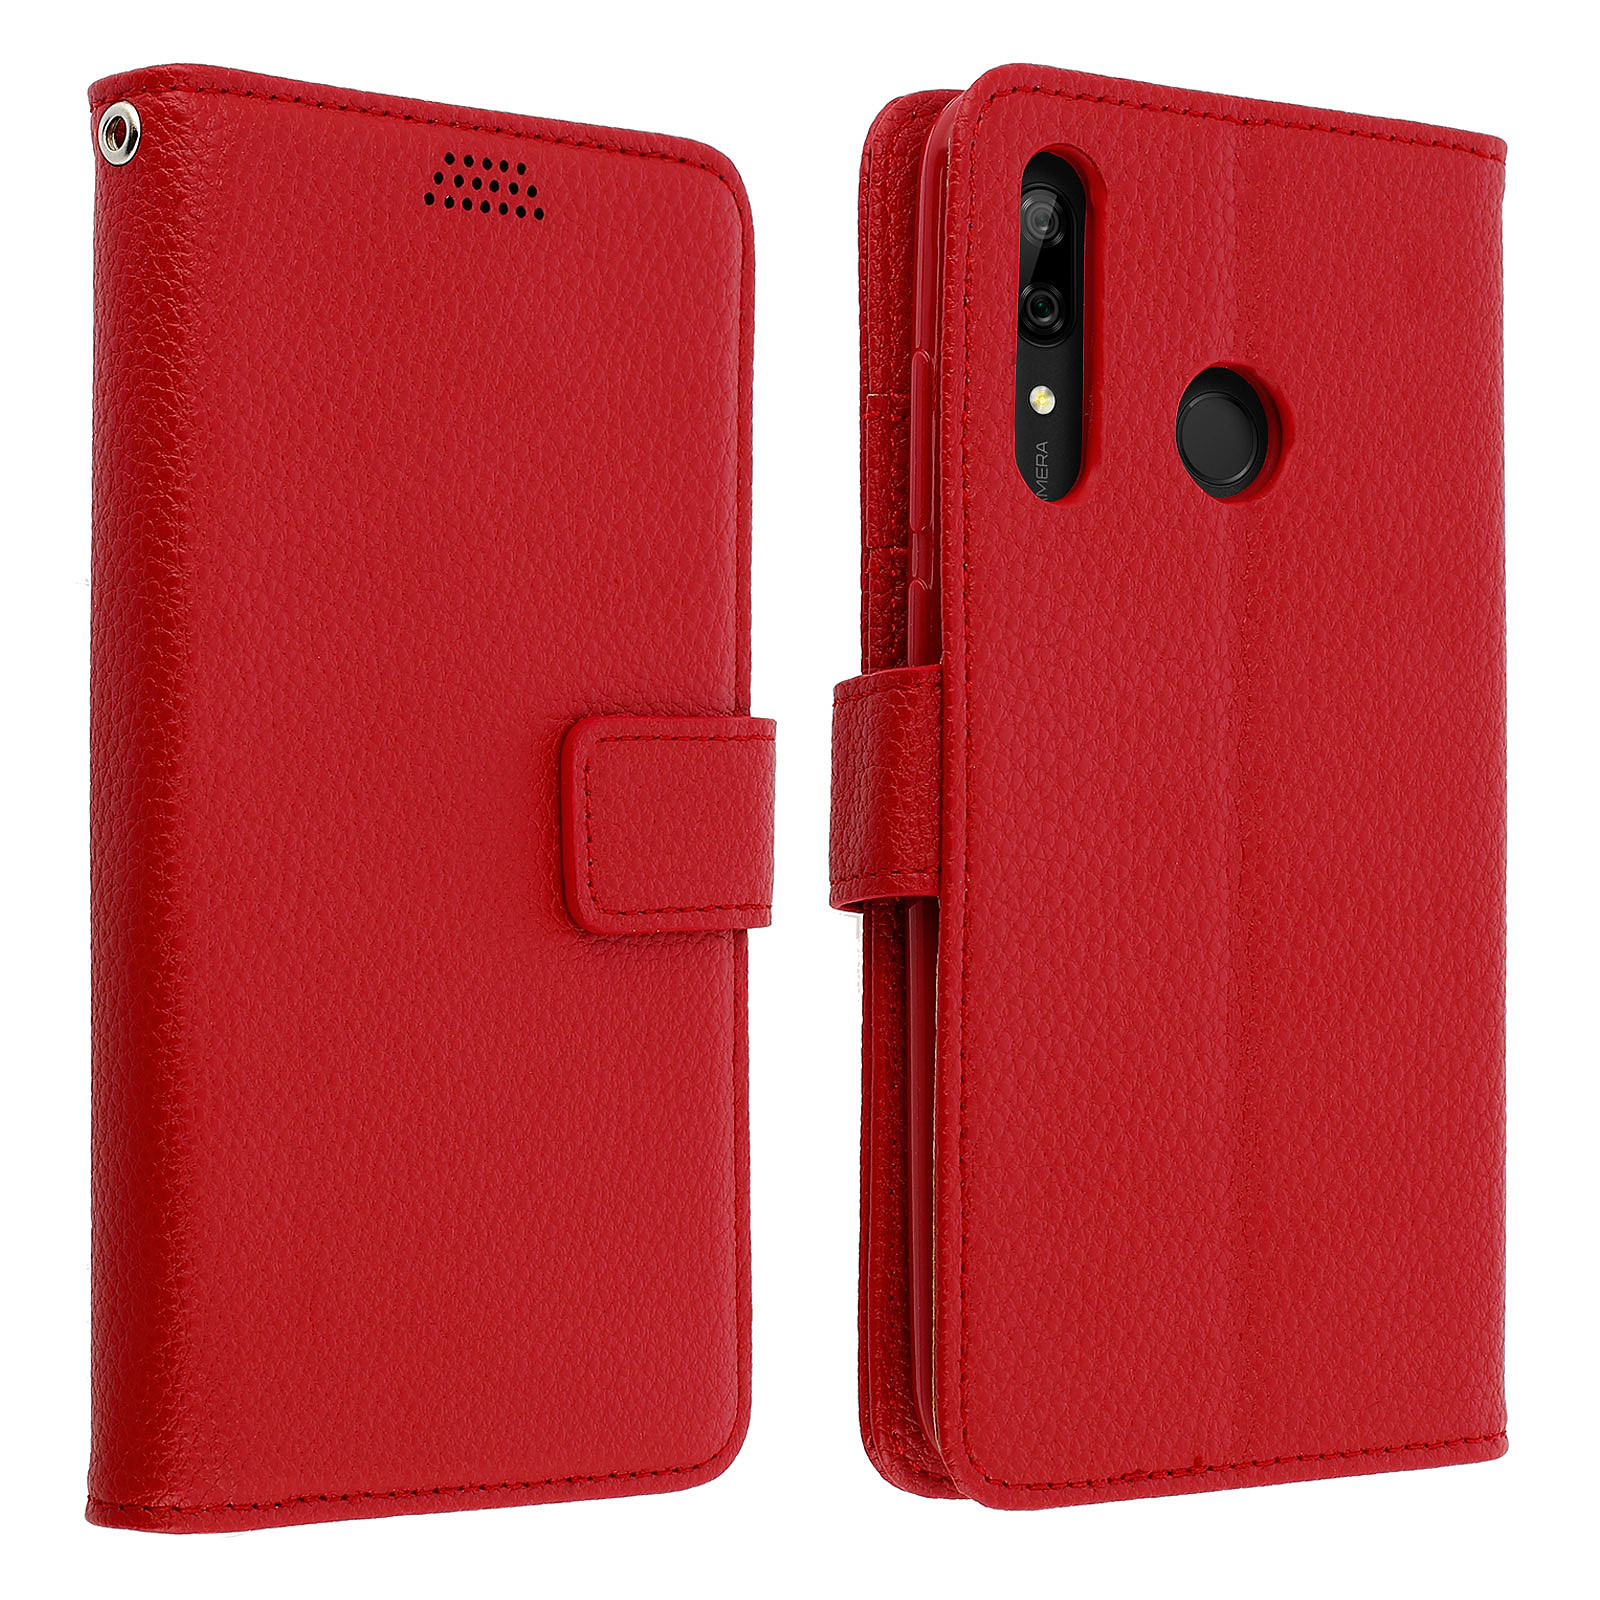 Avizar Etui folio Rouge pour Huawei P Smart Z , Honor 9X